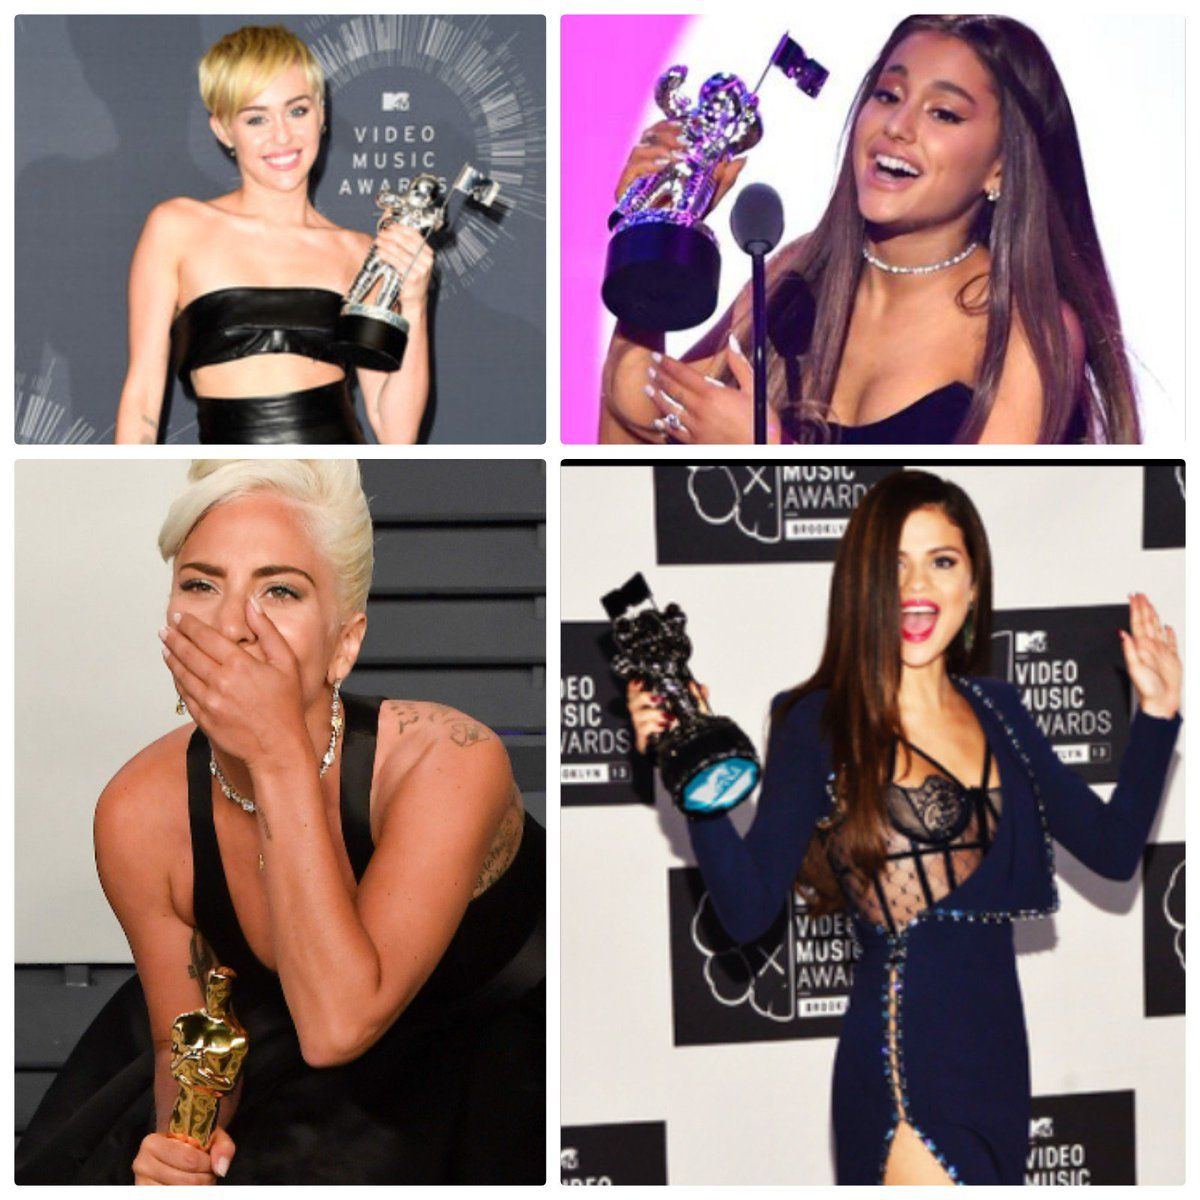 Selena Gomez. Lady Gaga. Ariana Grande. Miley Cyrus. Taylor Swift. Demi Lovato. Katy Perry.  Being a woman in the industry is extremely difficult. Let's support women. 🙏🏼❤️  @selenagomez @ladygaga @ArianaGrande @MileyCyrus @ddlovato @taylorswift13 @katyperry